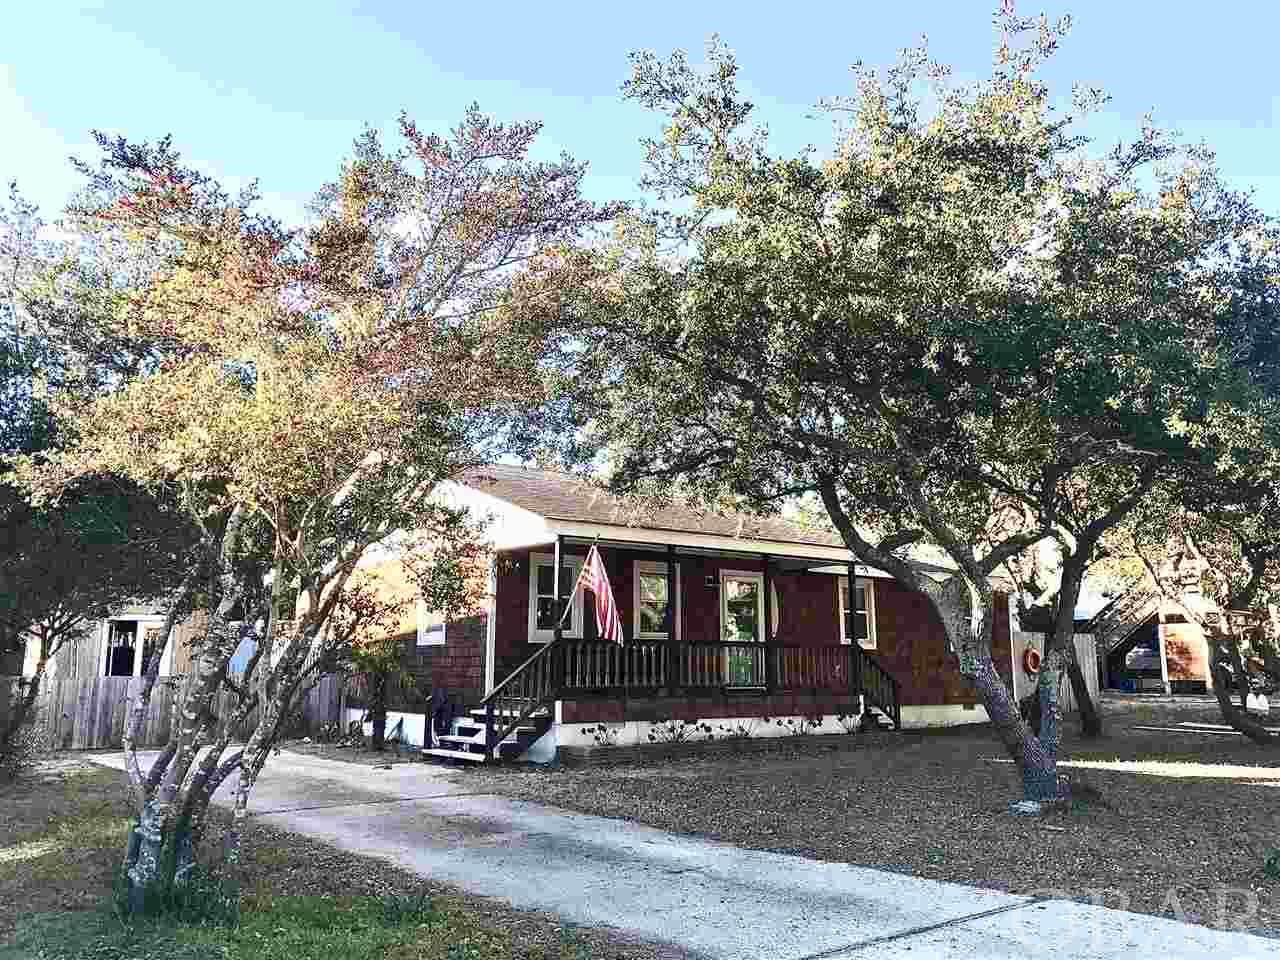 421 Cooke Place, Kill Devil Hills, NC 27948, 3 Bedrooms Bedrooms, ,2 BathroomsBathrooms,Residential,For sale,Cooke Place,107745